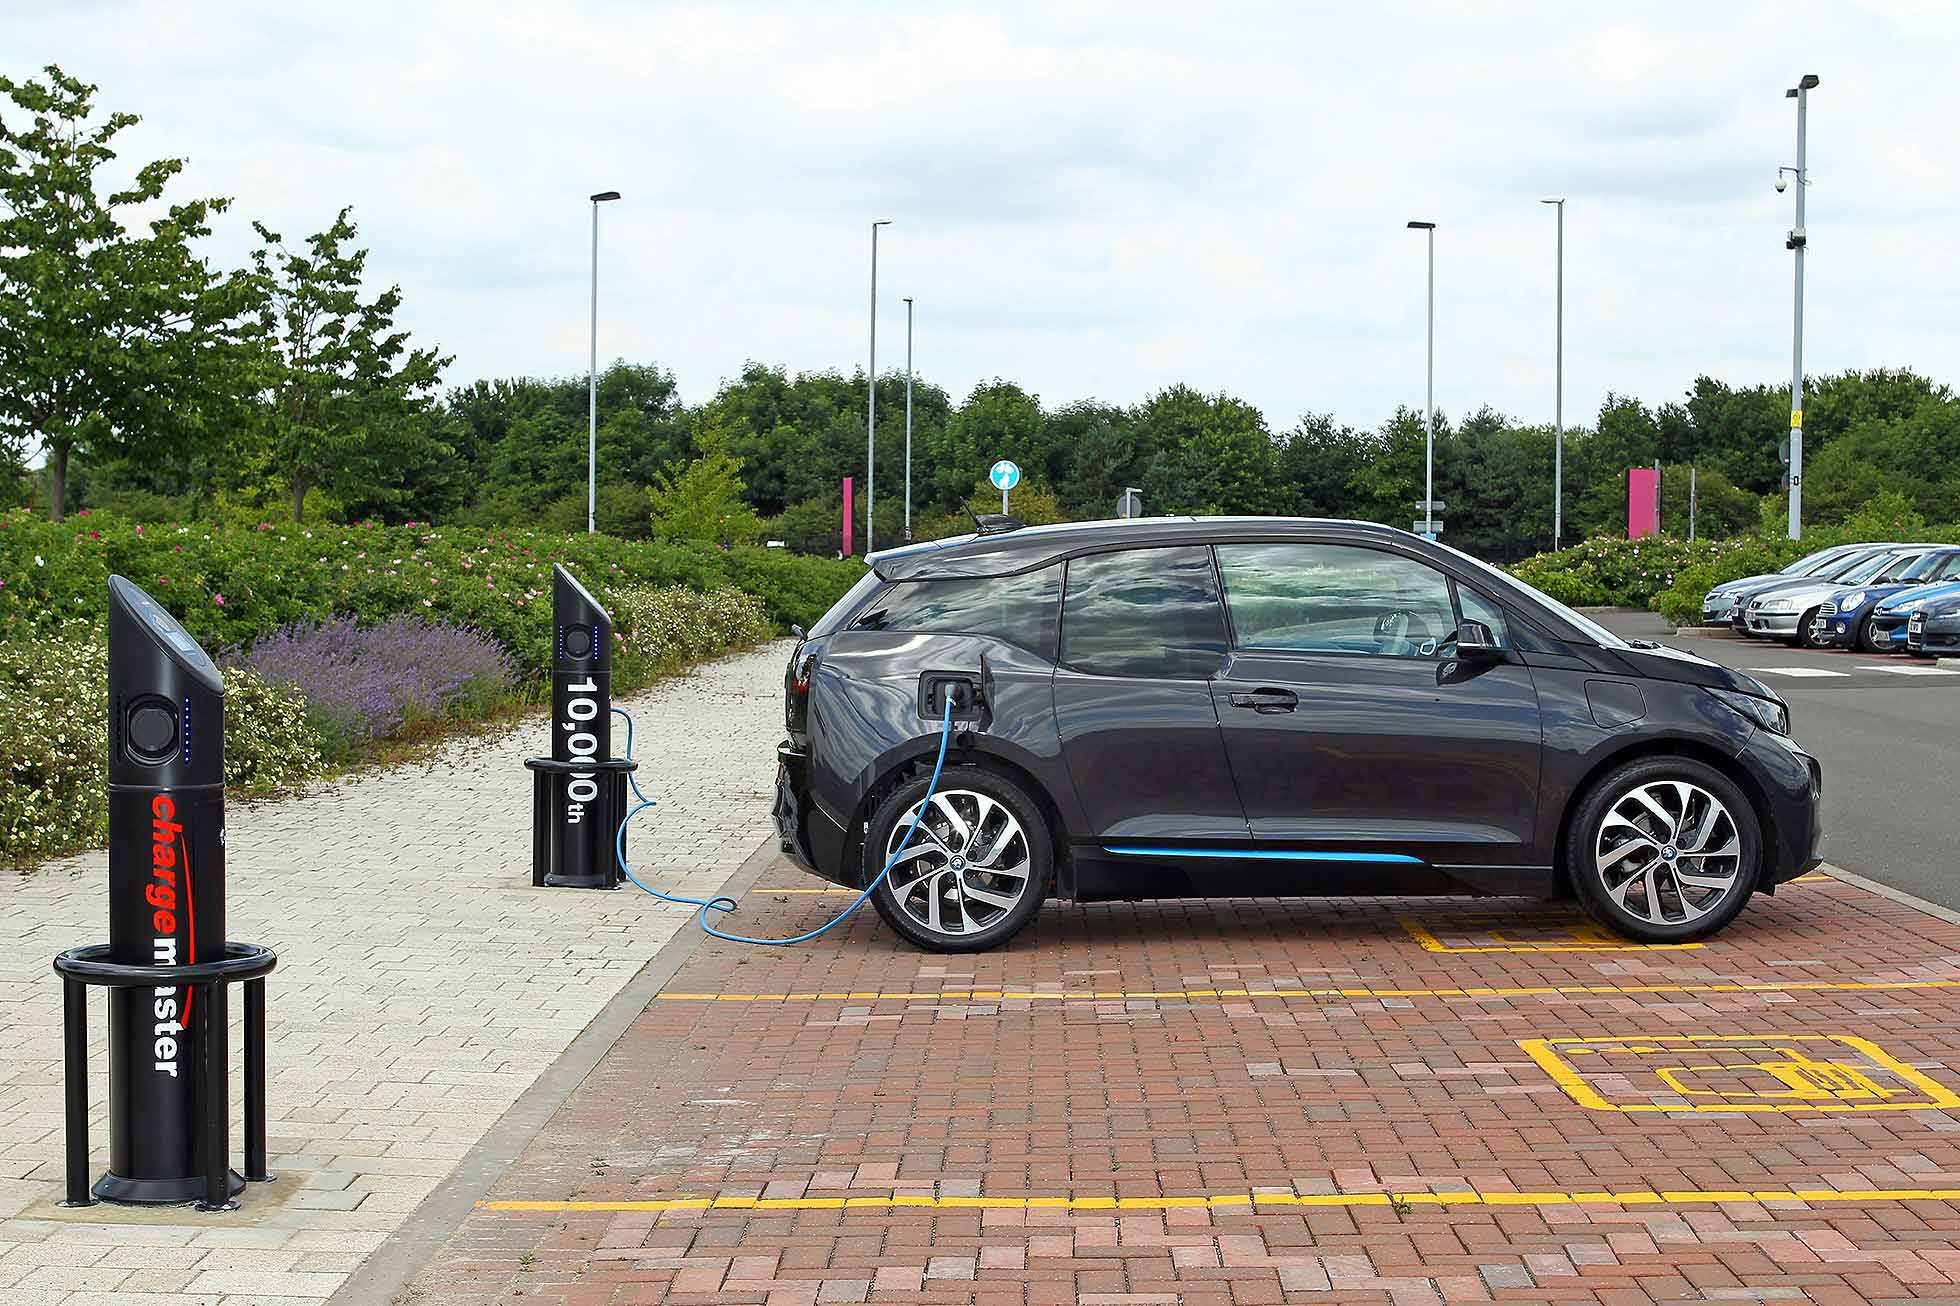 Chargemaster EV charging point